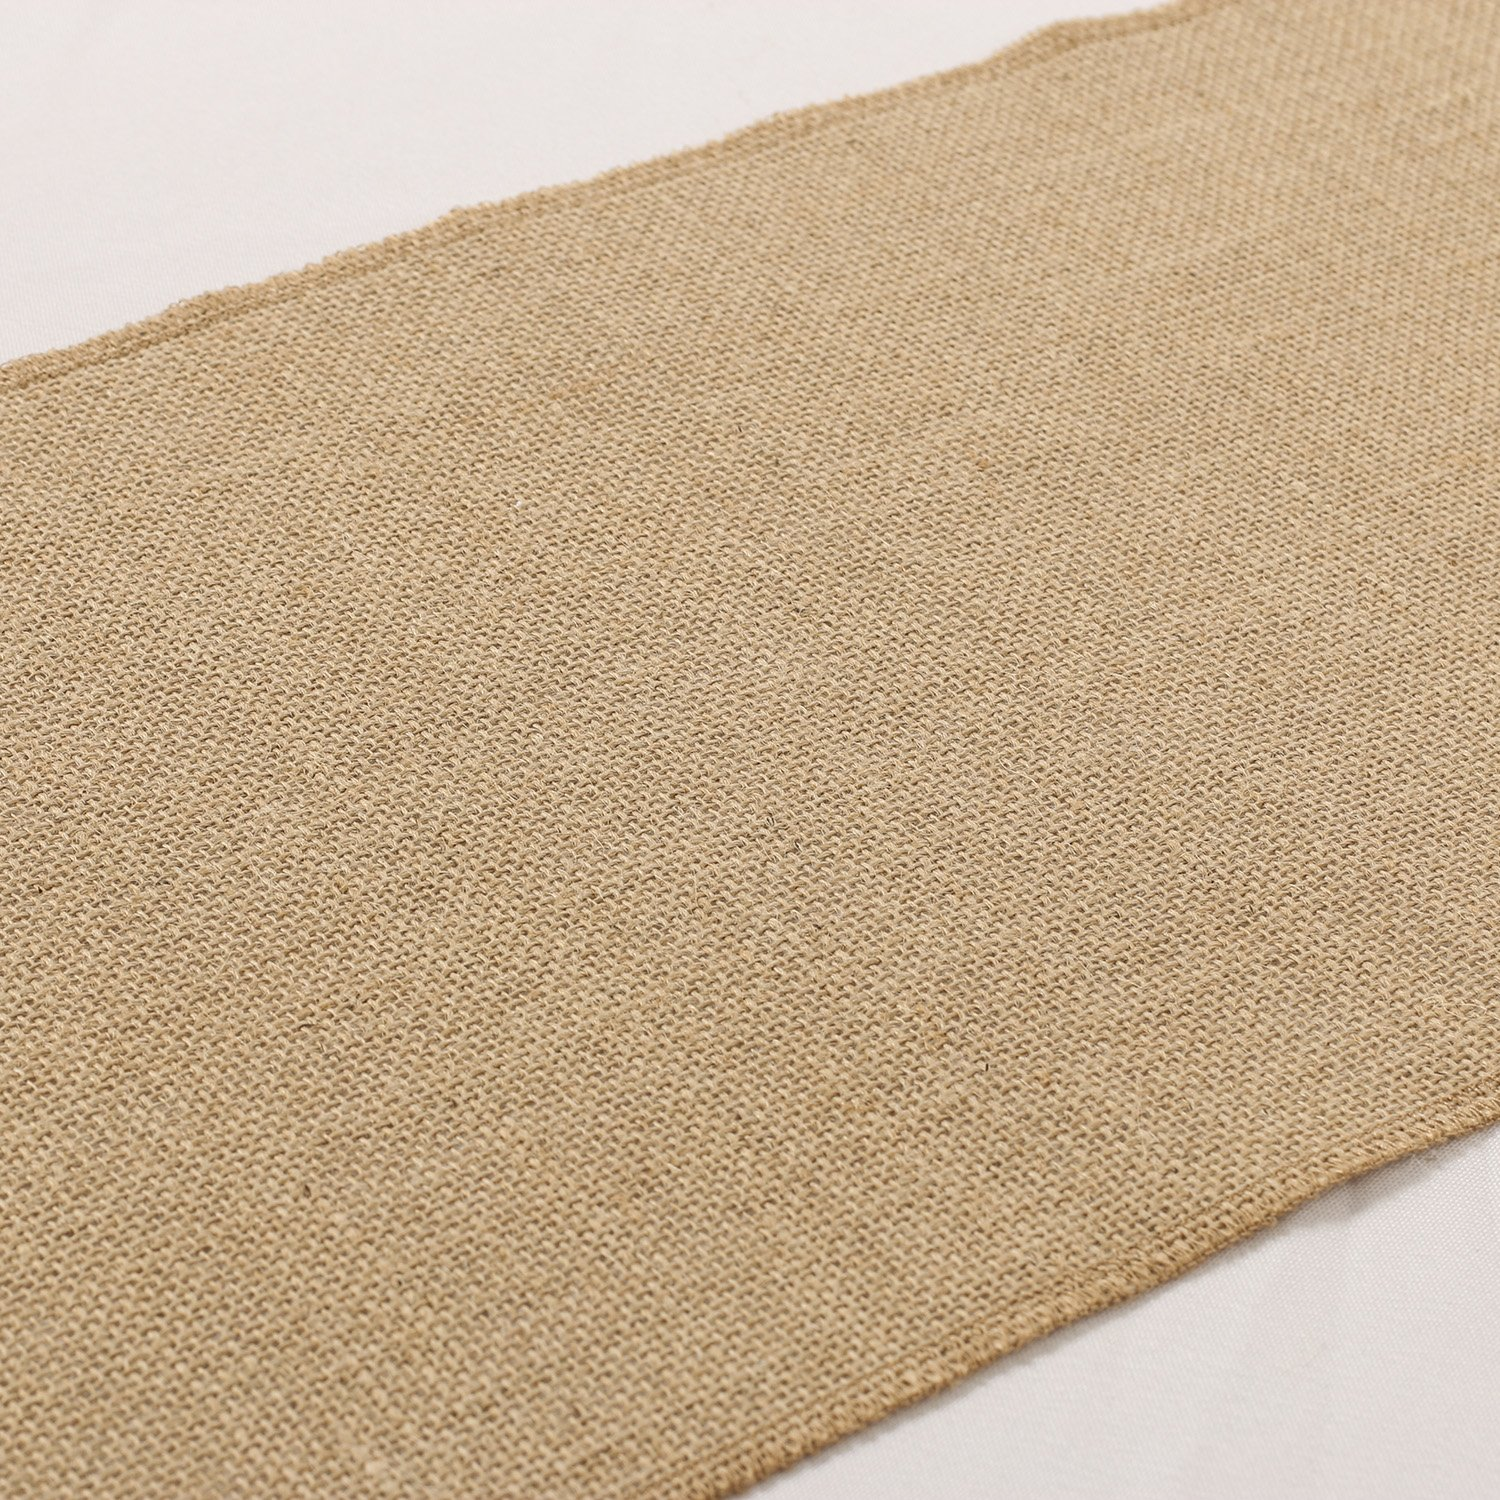 Ling's moment 12''x108'' Nearly Natural Burlap Wedding Table Runner Jute Spring Summer Easter Decoration Country Rustic Wedding Decorations Farmhouse Kitchen Decor by Ling's moment (Image #5)